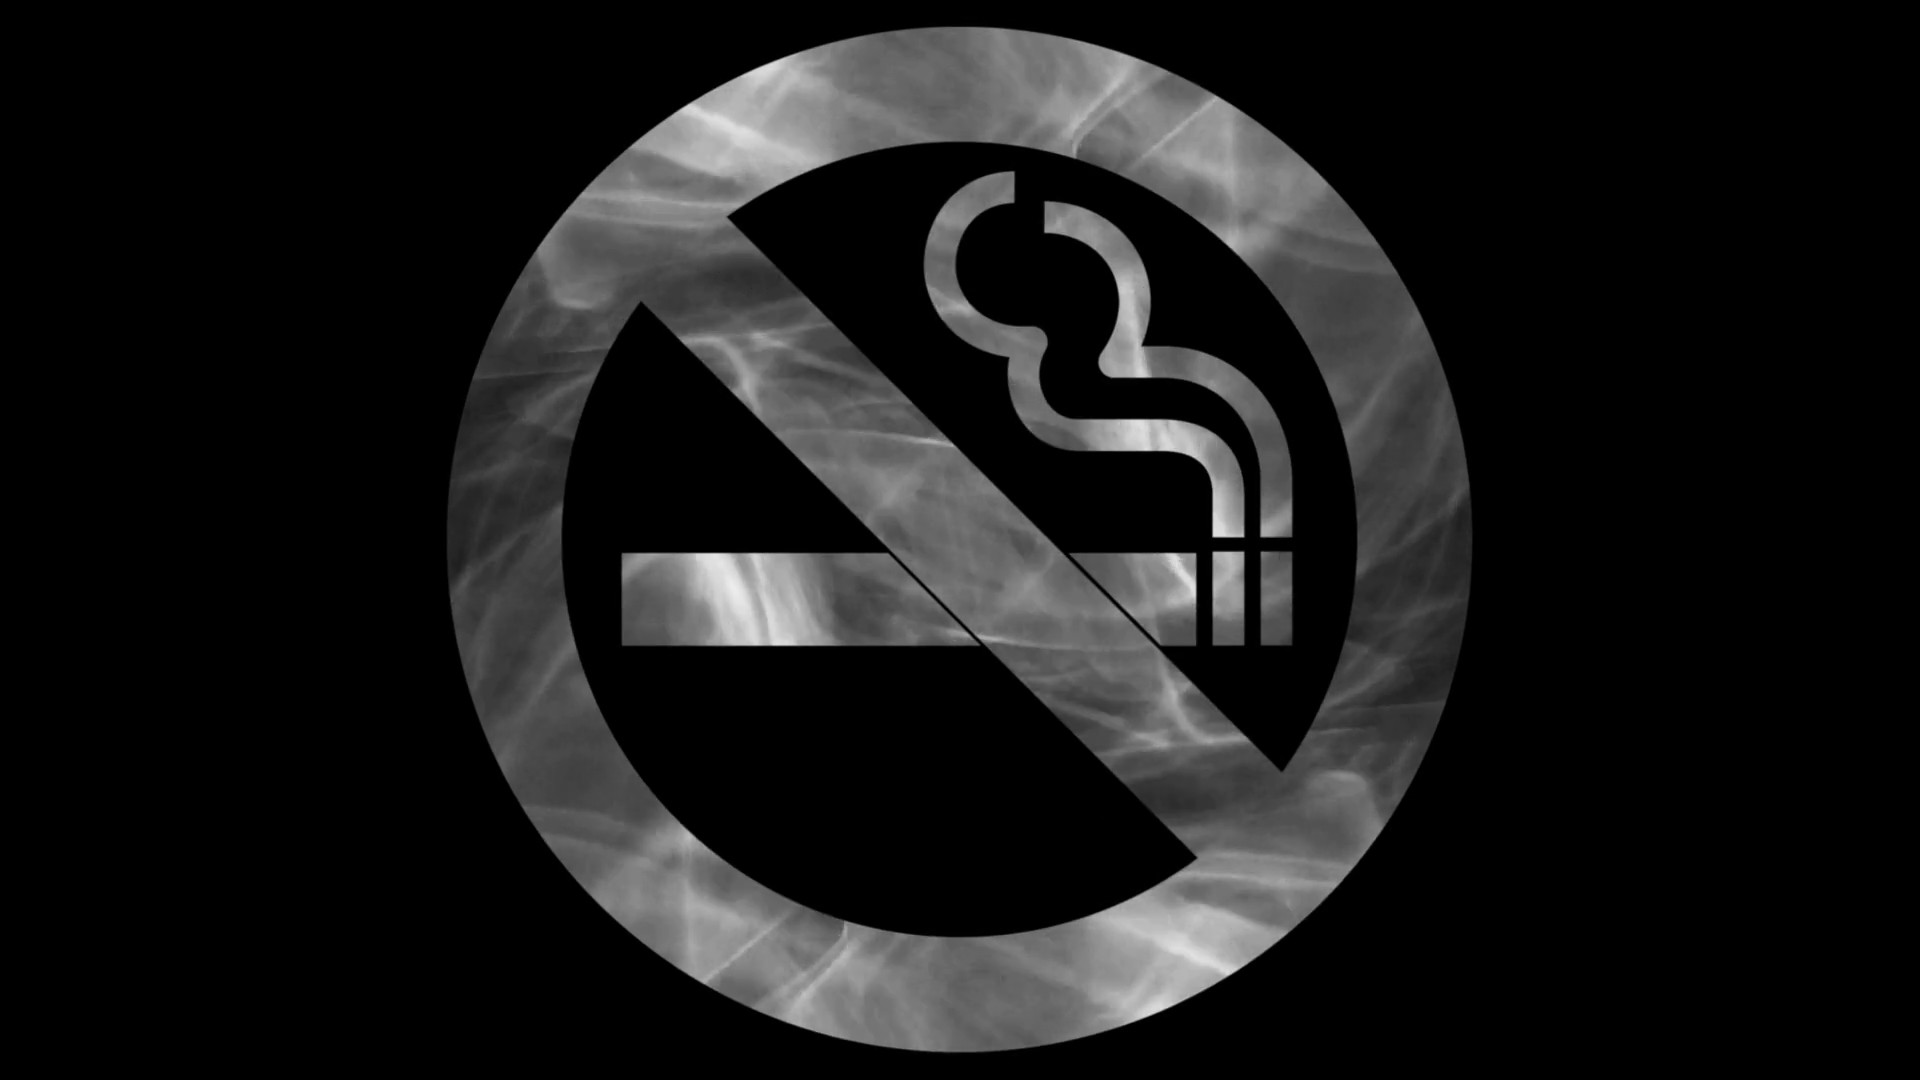 No Smoking Wallpaper 53 images 1920x1080